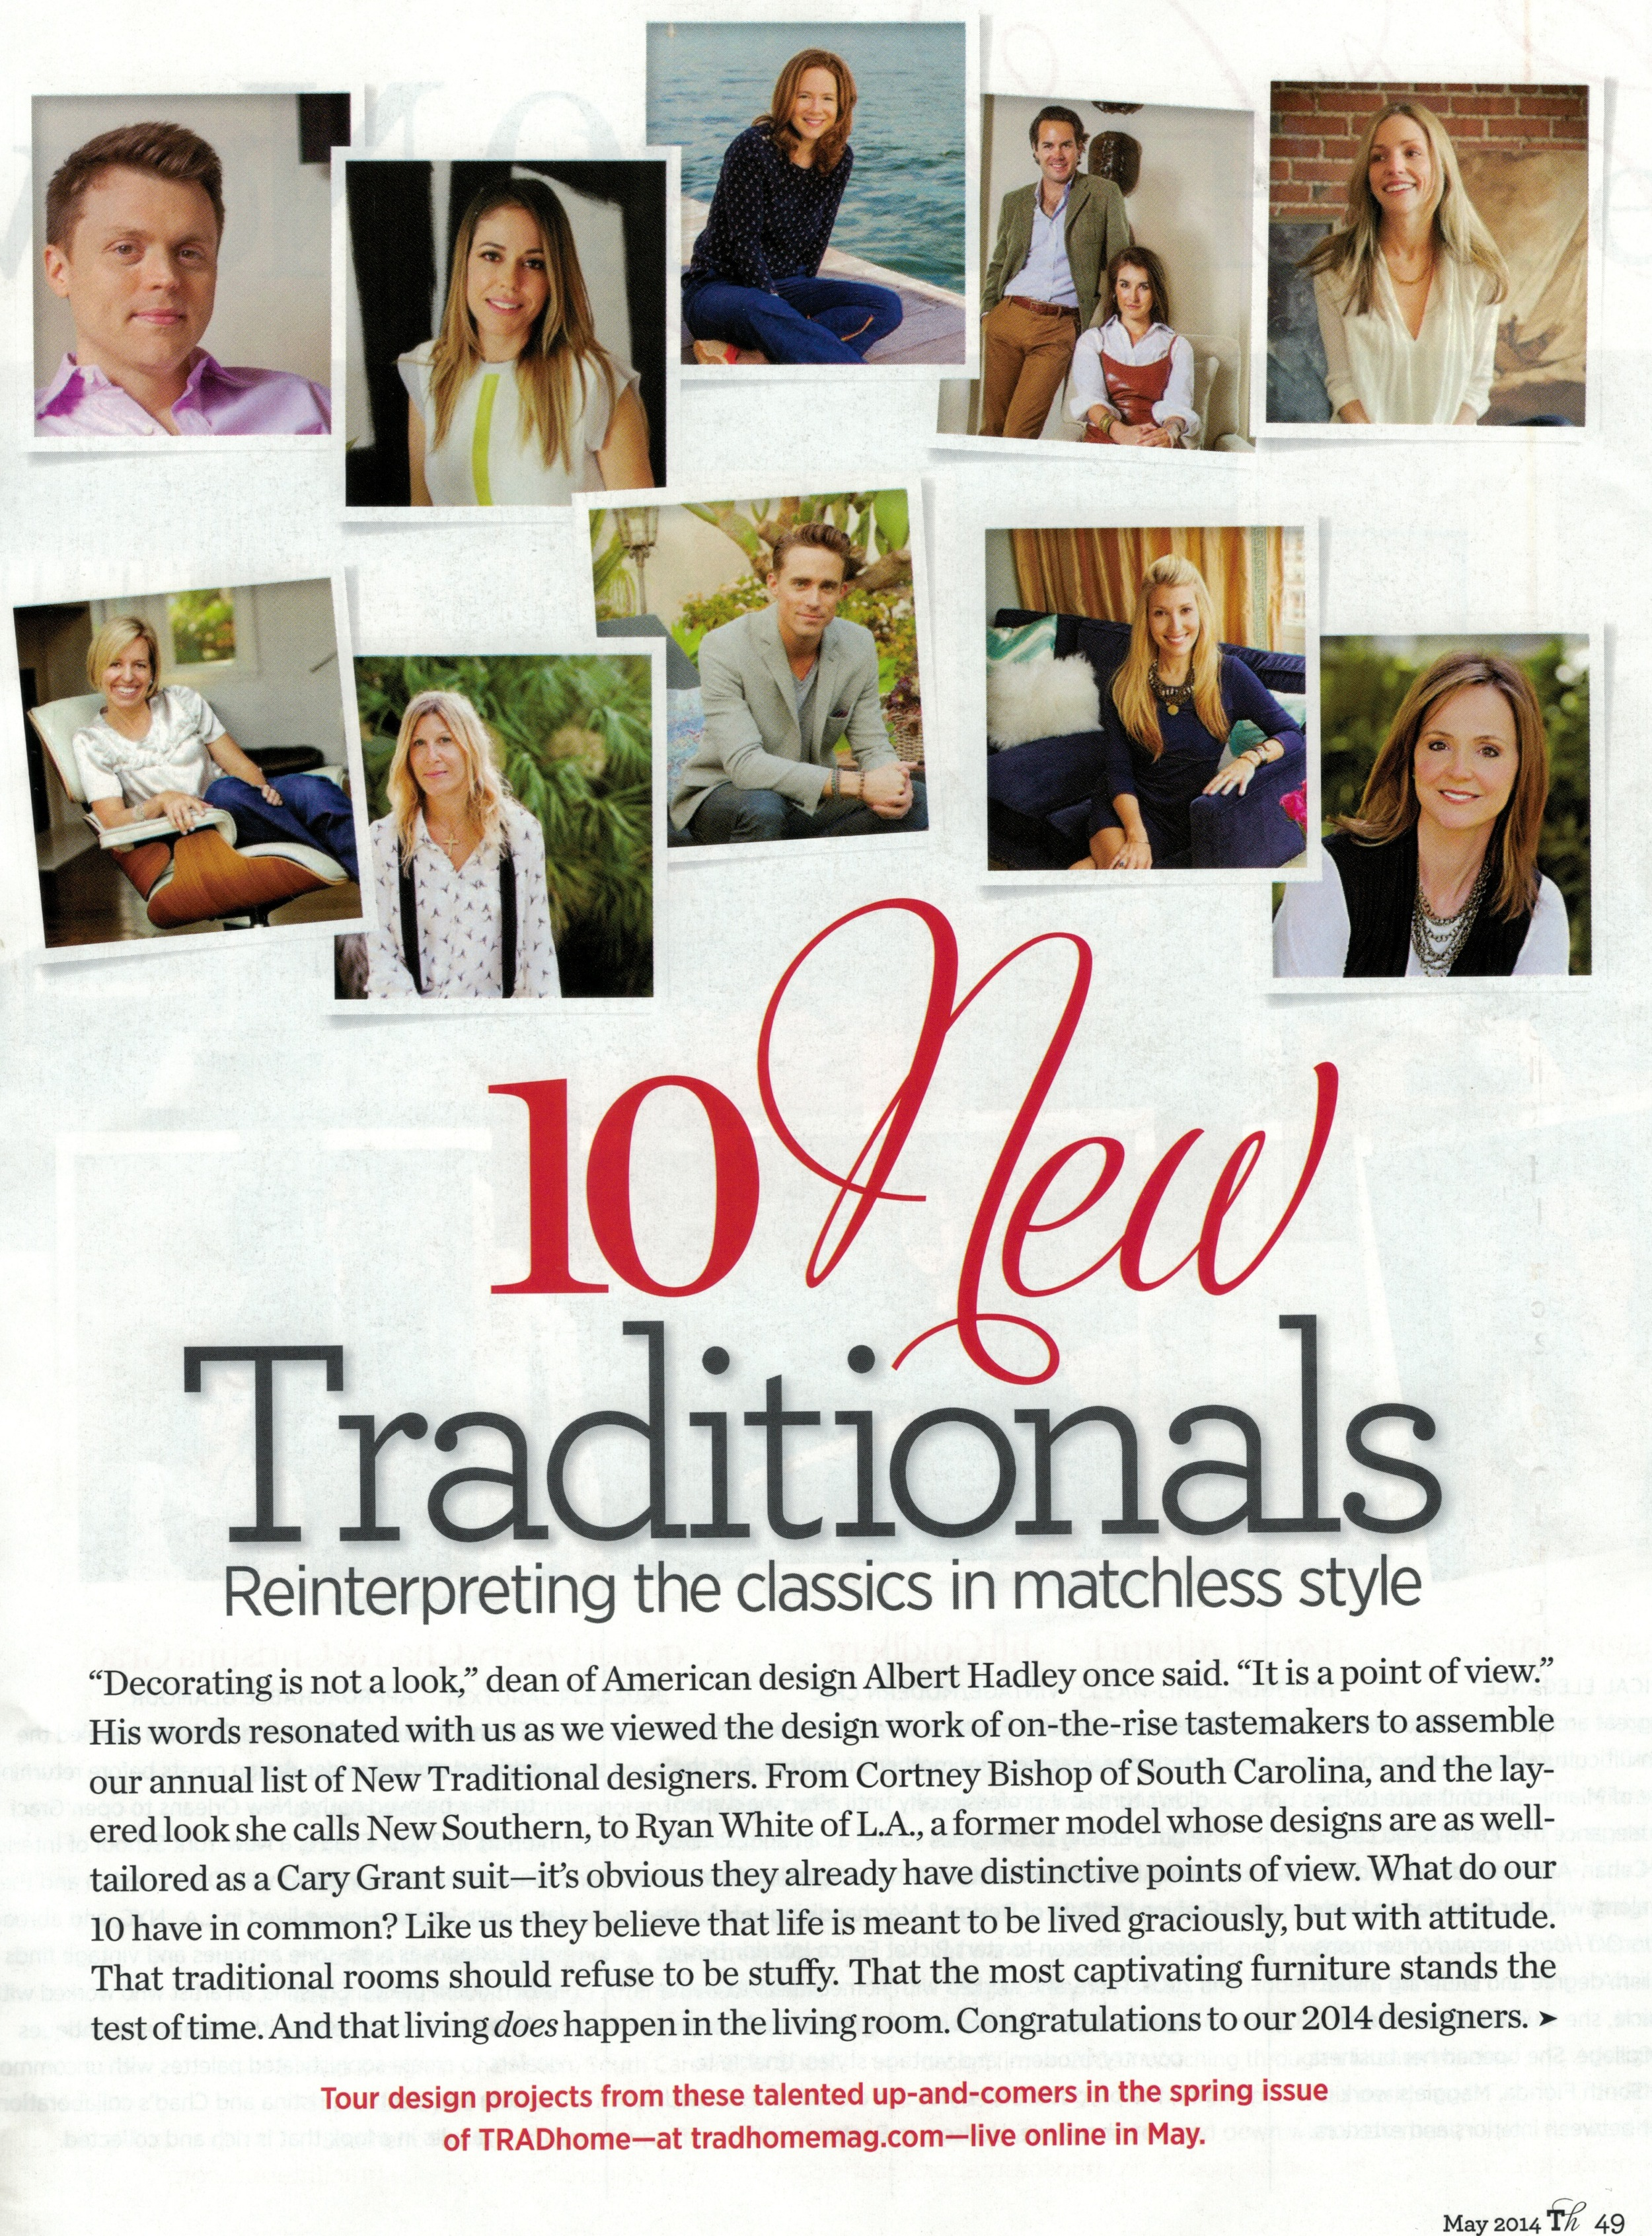 10 New Traditionals